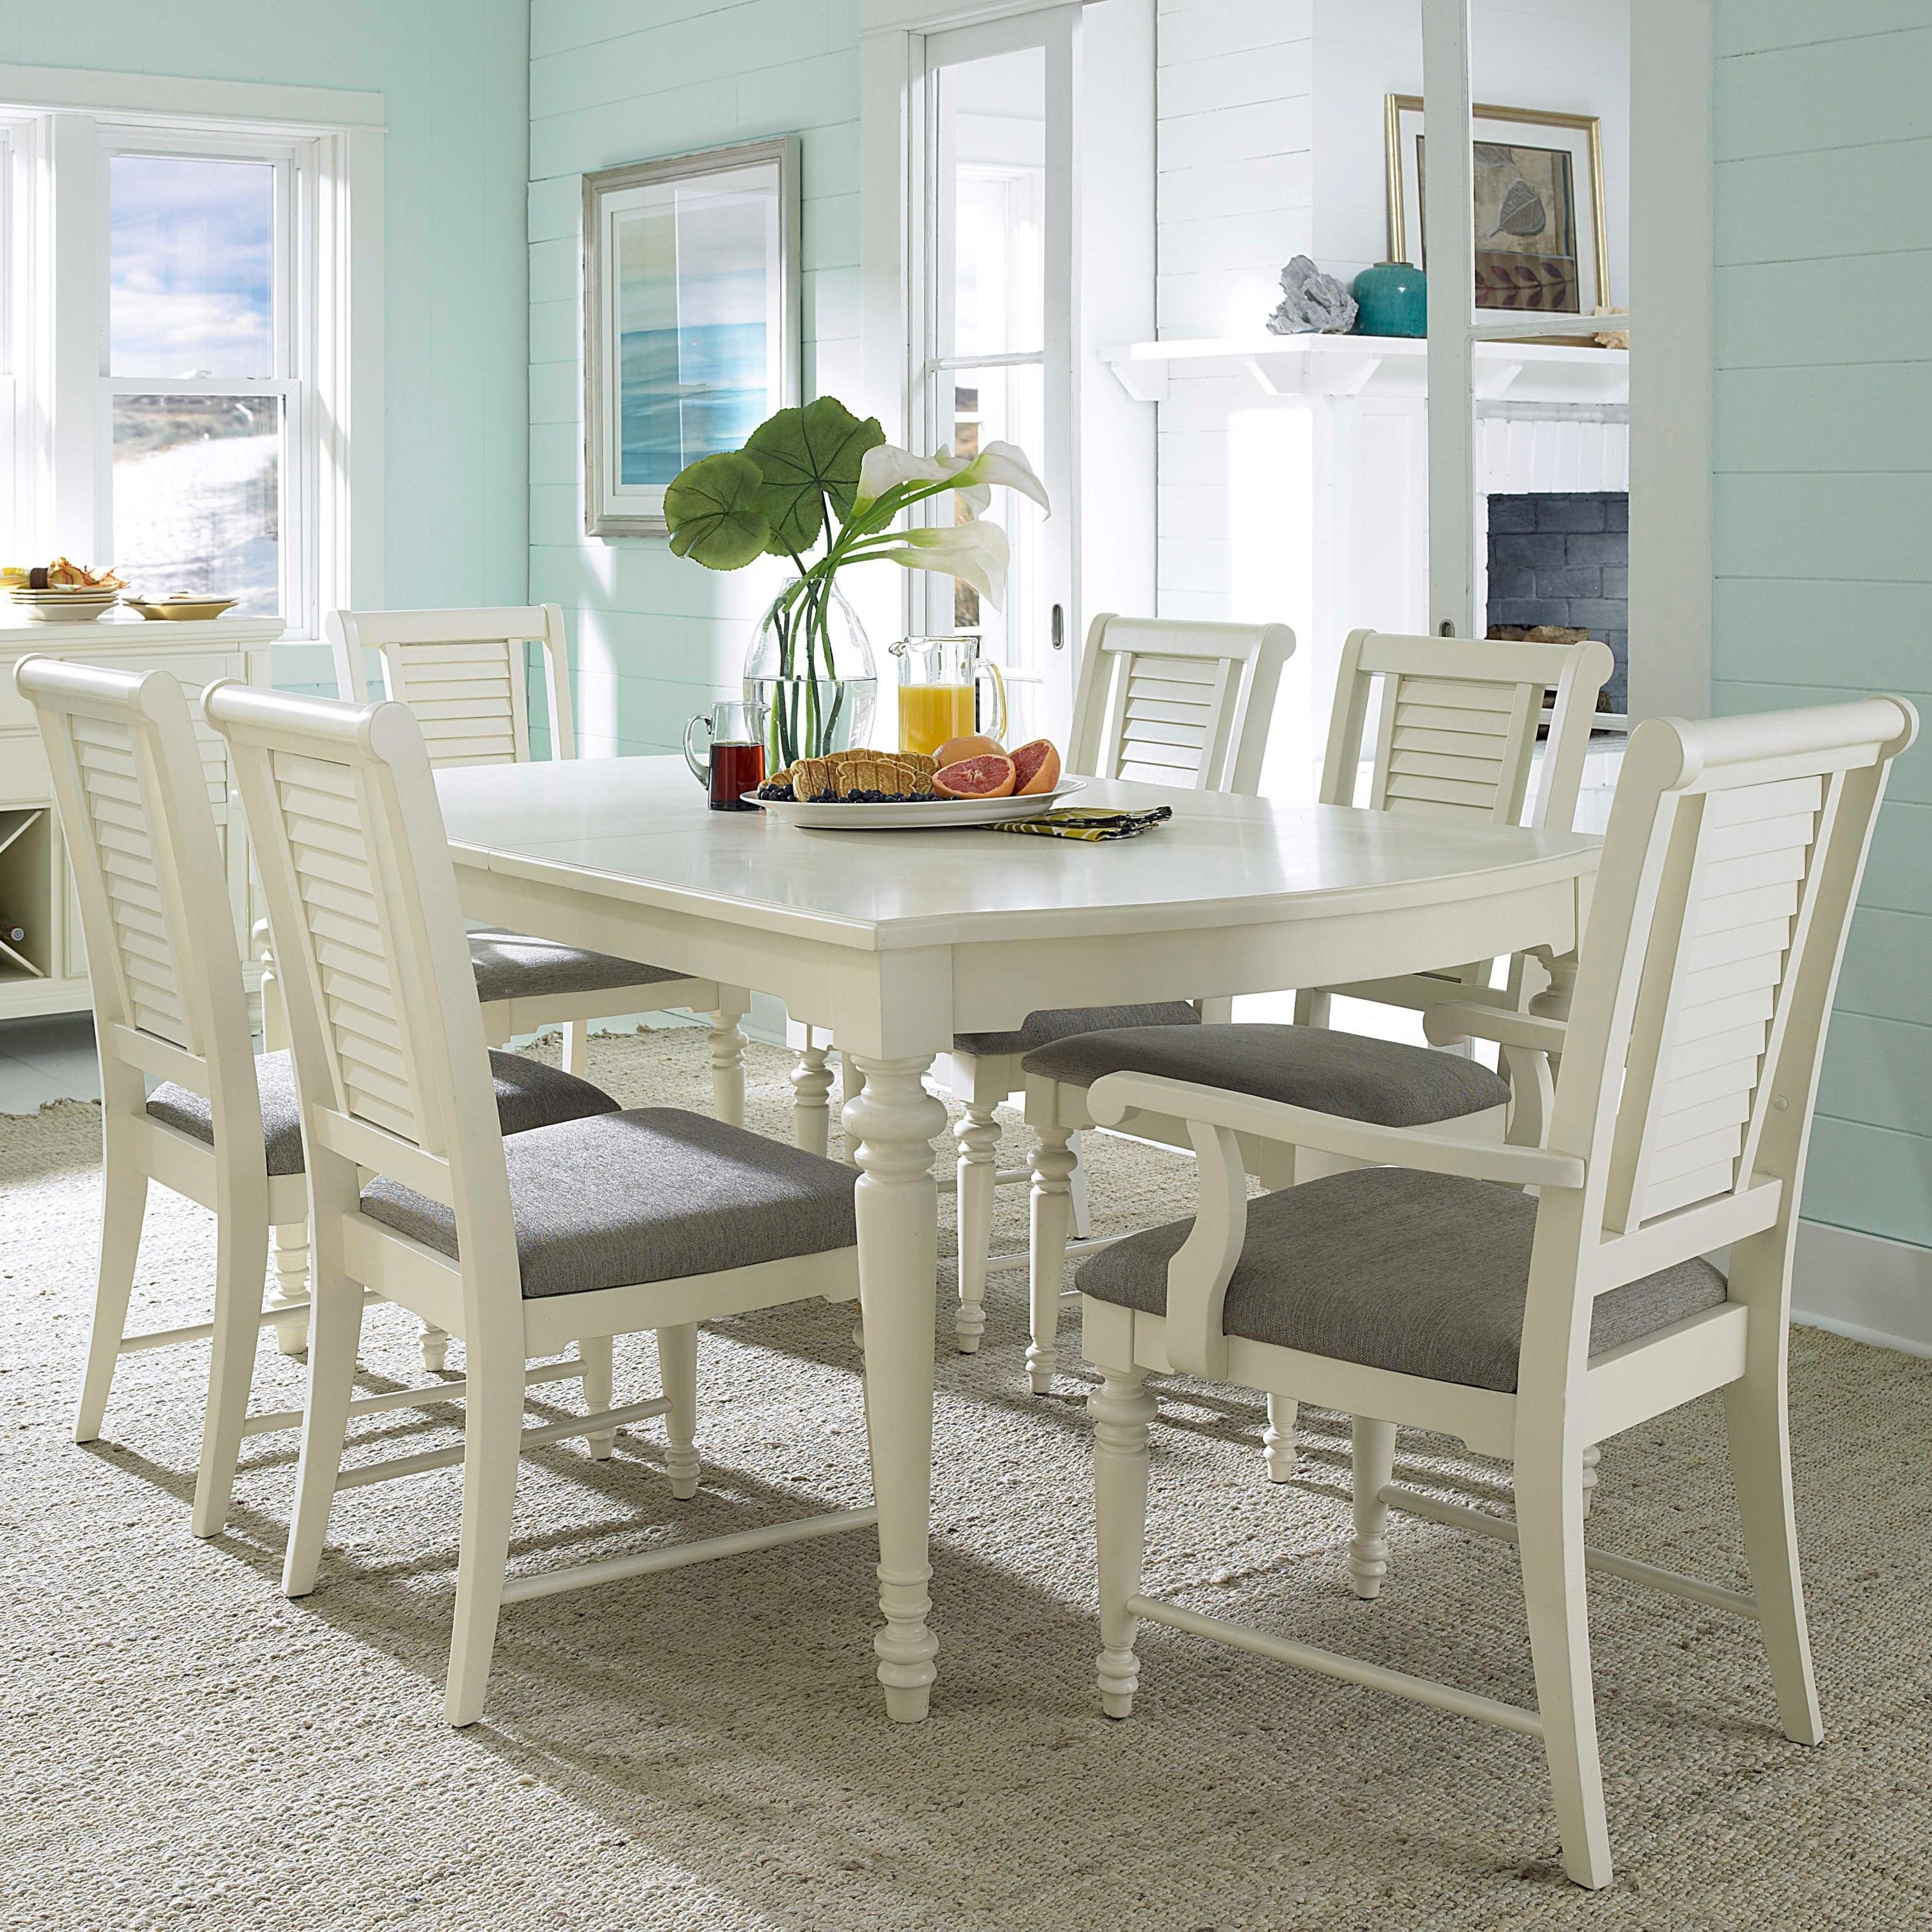 Broyhill Furniture Seabrooke 7 Piece Turned Leg Dining Table And Throughout 2018 White Dining Tables Sets (View 4 of 25)